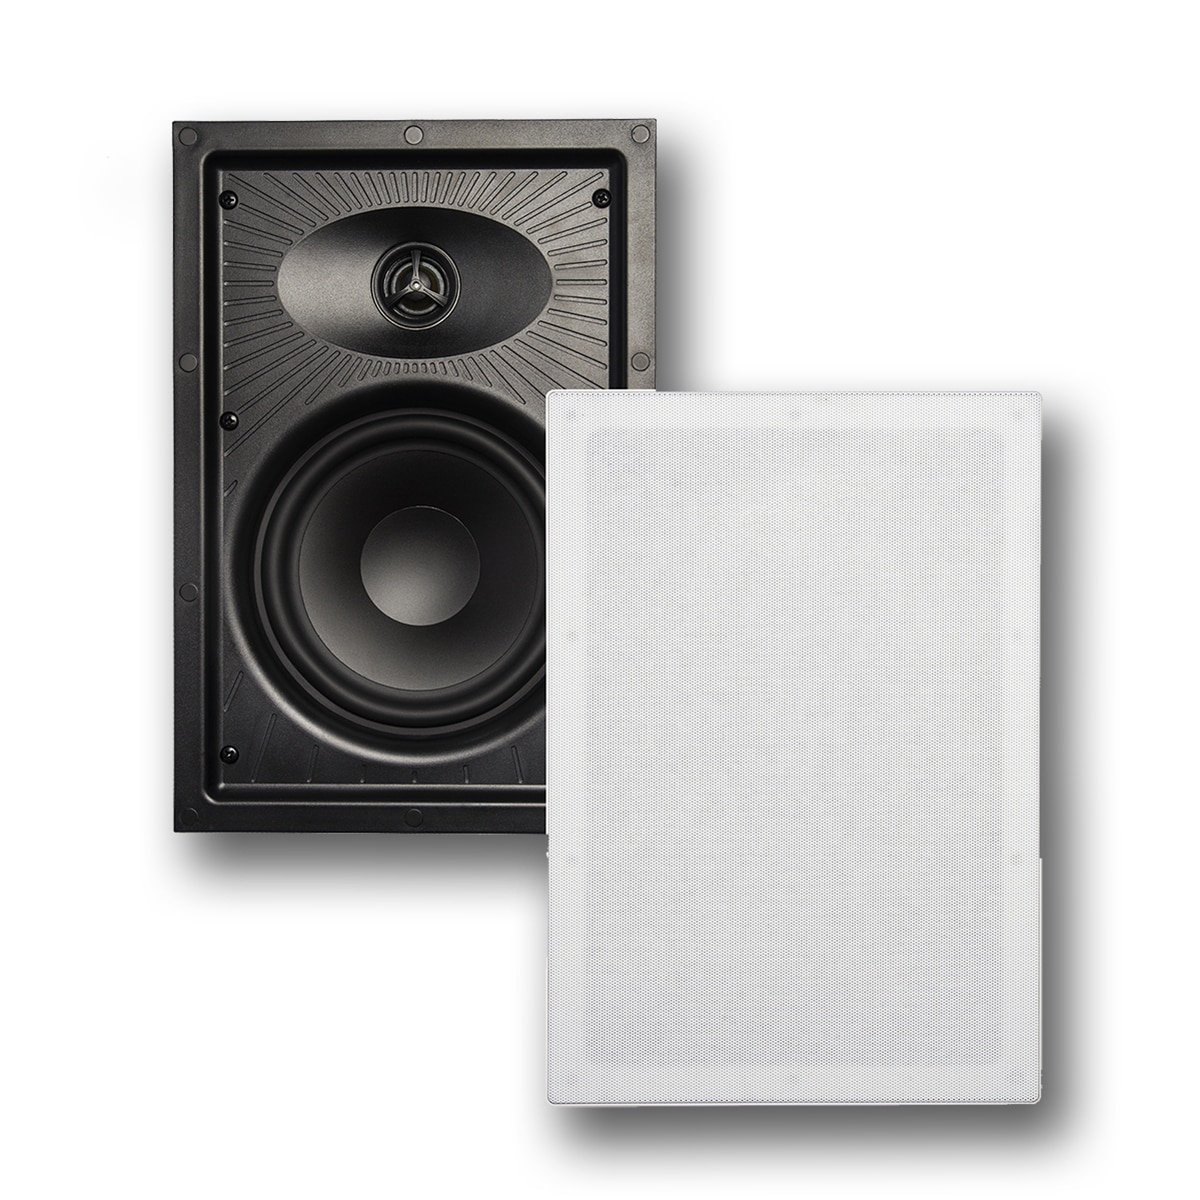 In Wall Speakers: Faraday Series F-6600 Front and Grille